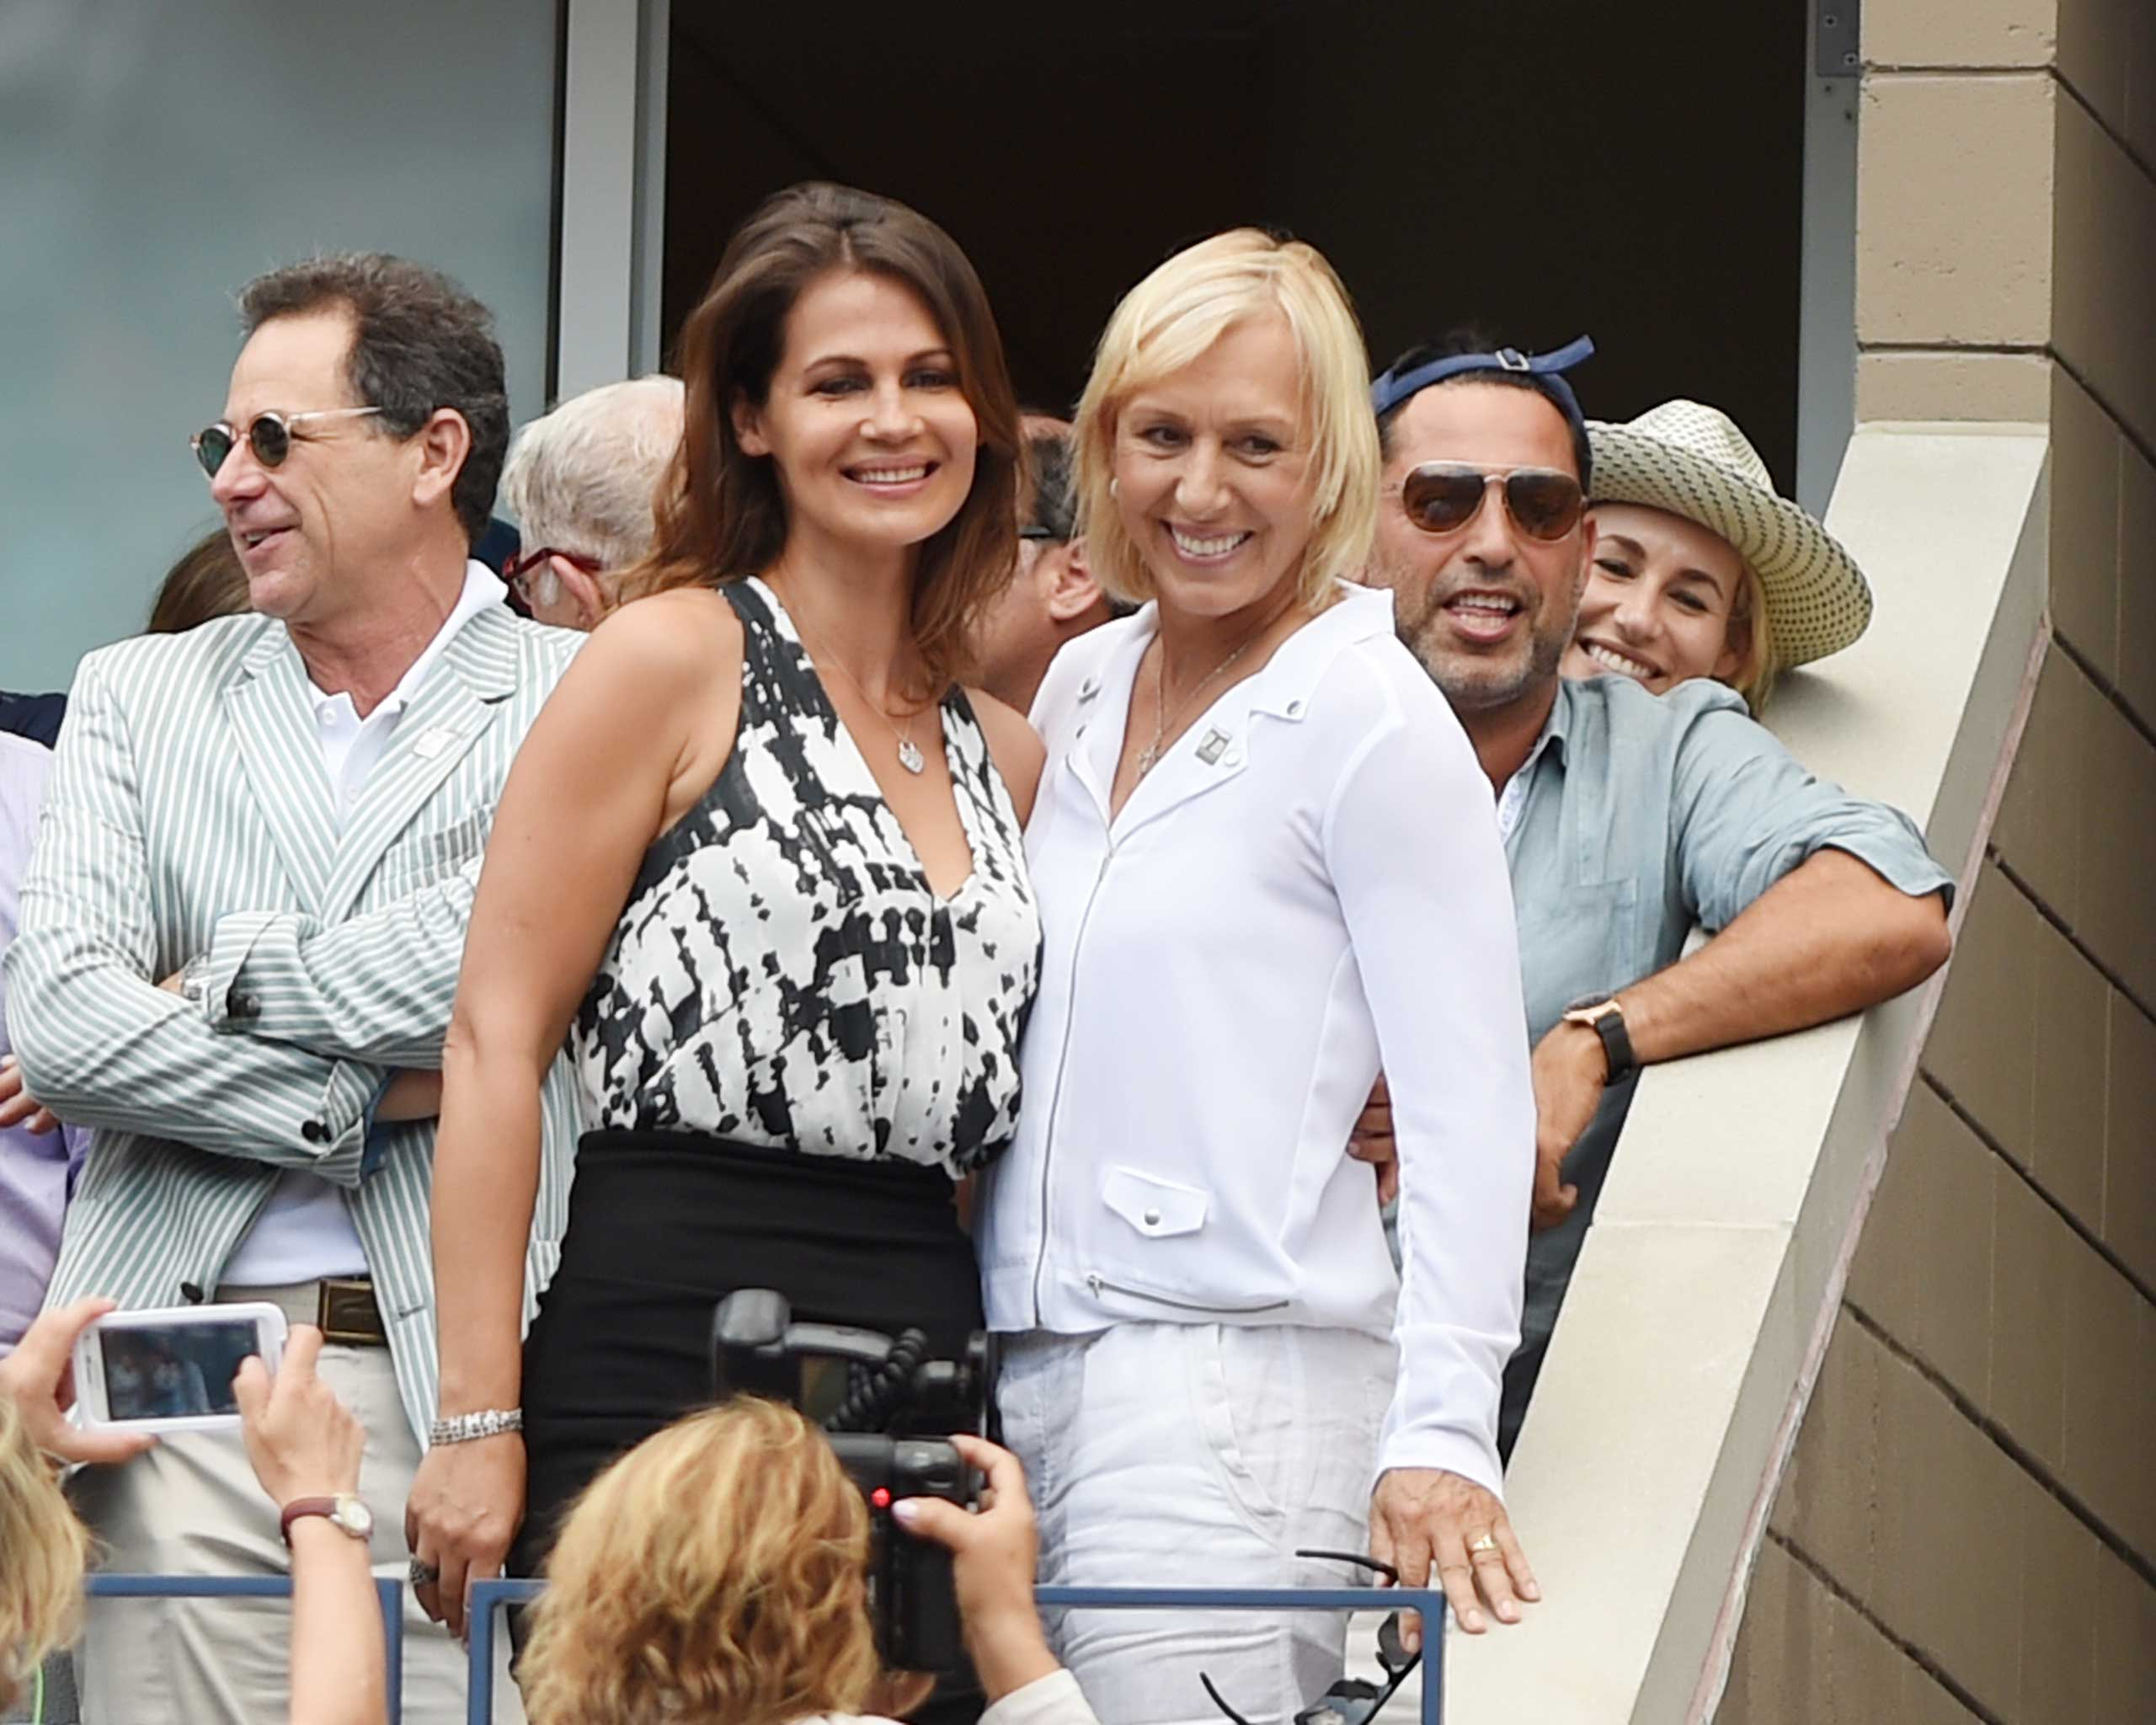 Martina Navratilova and Julia Lemigova celebrate their engagement during day 13 of the 2014 US Open at USTA Billie Jean King National Tennis Center on Sept. 6, 2014 in New York.